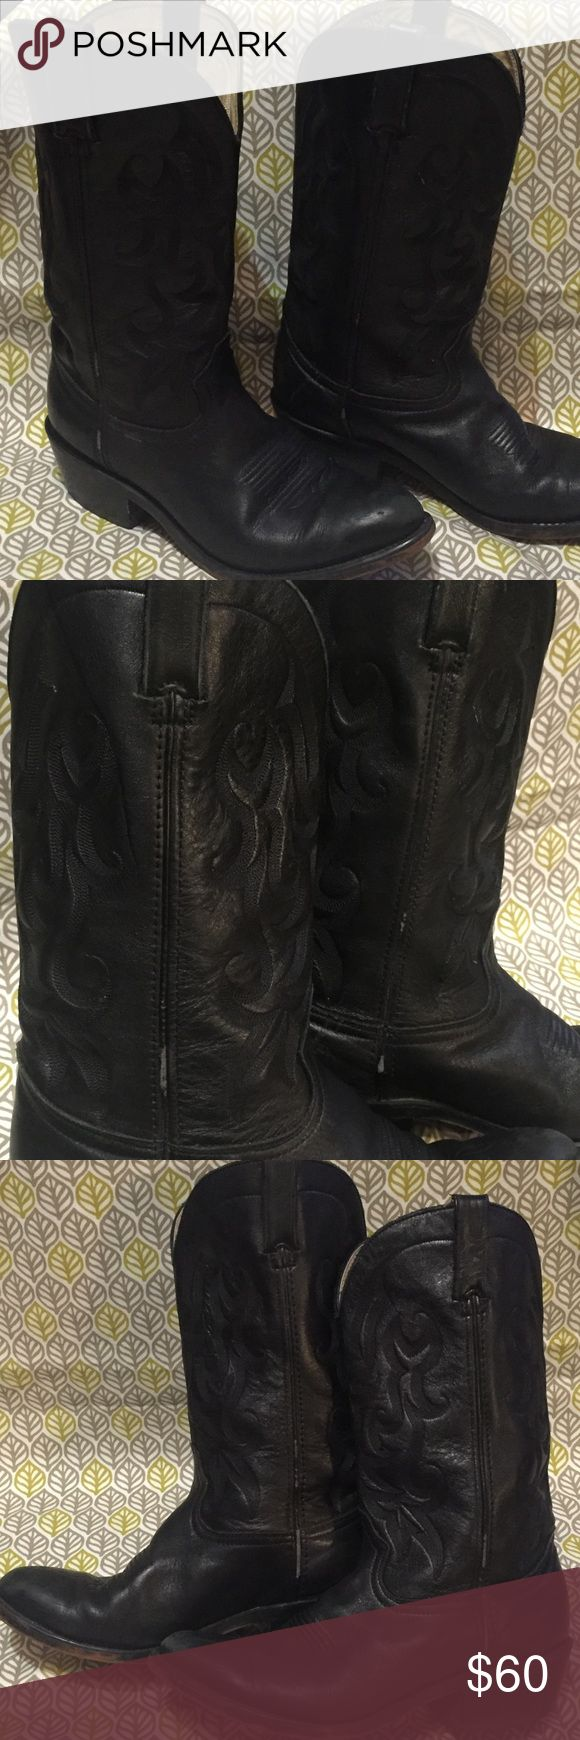 Black Durango Cowboy Boots 9 These are a vintage/used pair of leather cowboy boots. There are signs of wear, as seen in photos. Need a good polishing and your good to go. Rock them like Gaga! Durango Shoes Heeled Boots